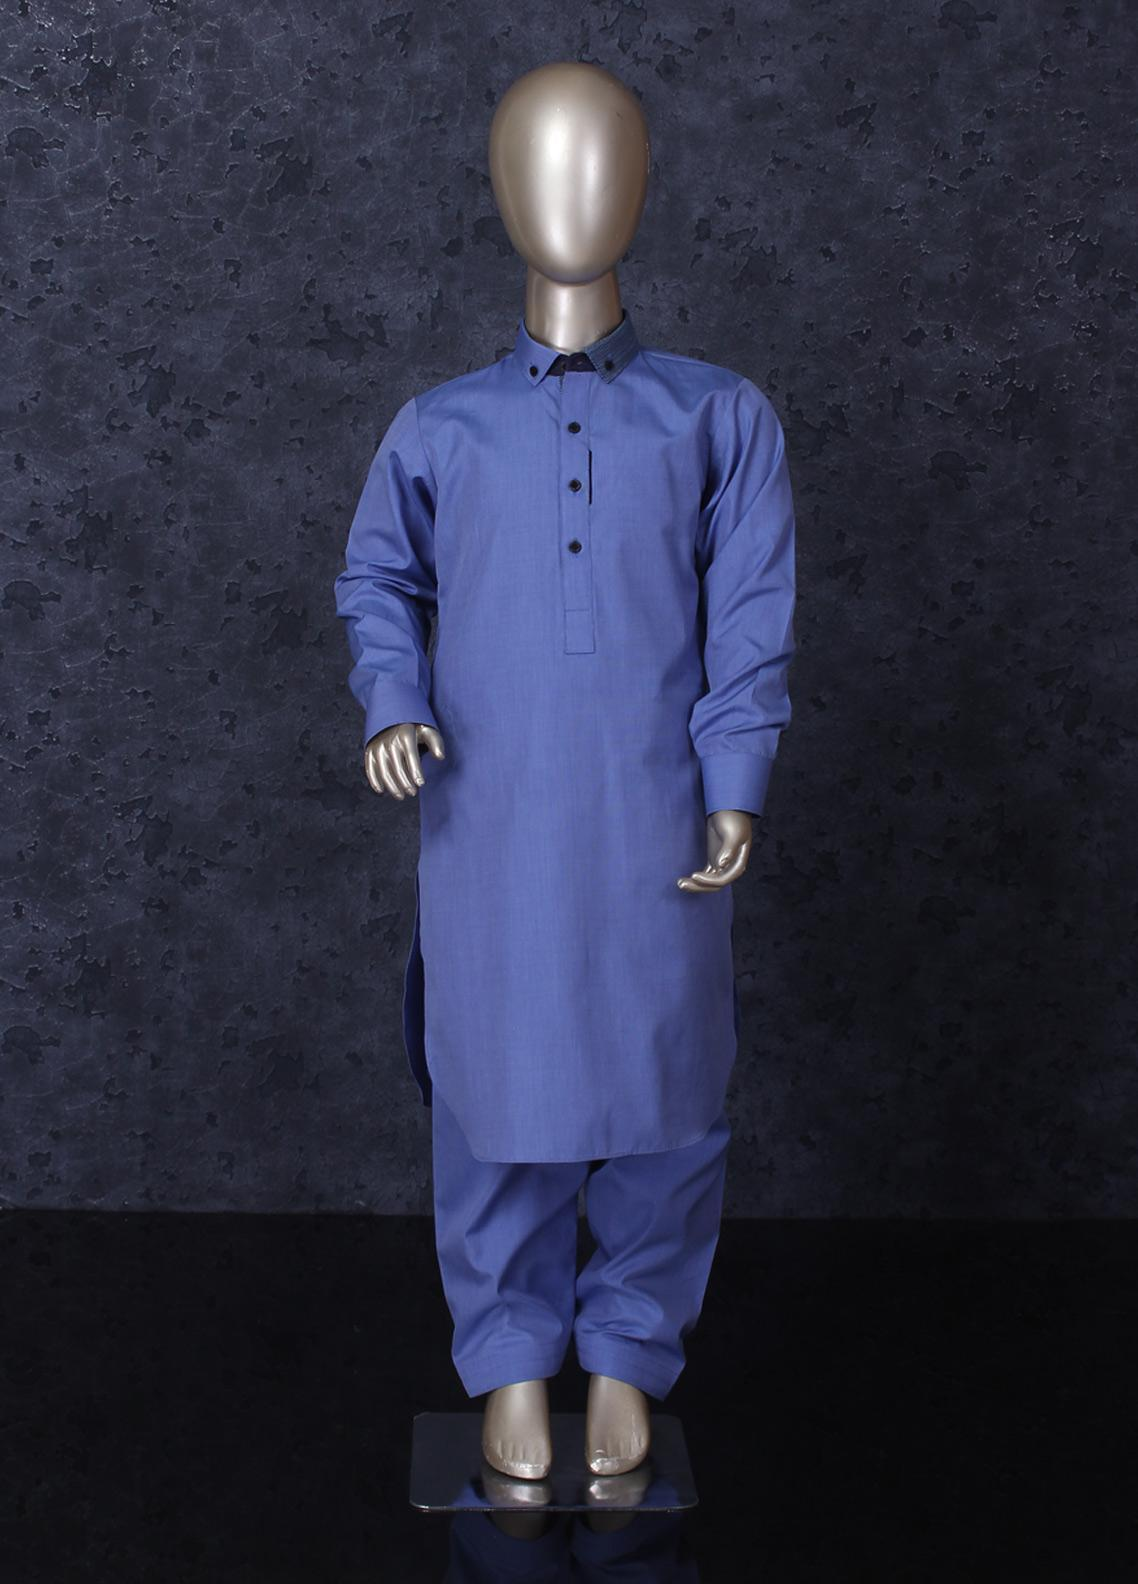 Aizaz Zafar Cotton Formal Kameez Shalwar for Boys - 254 Blue